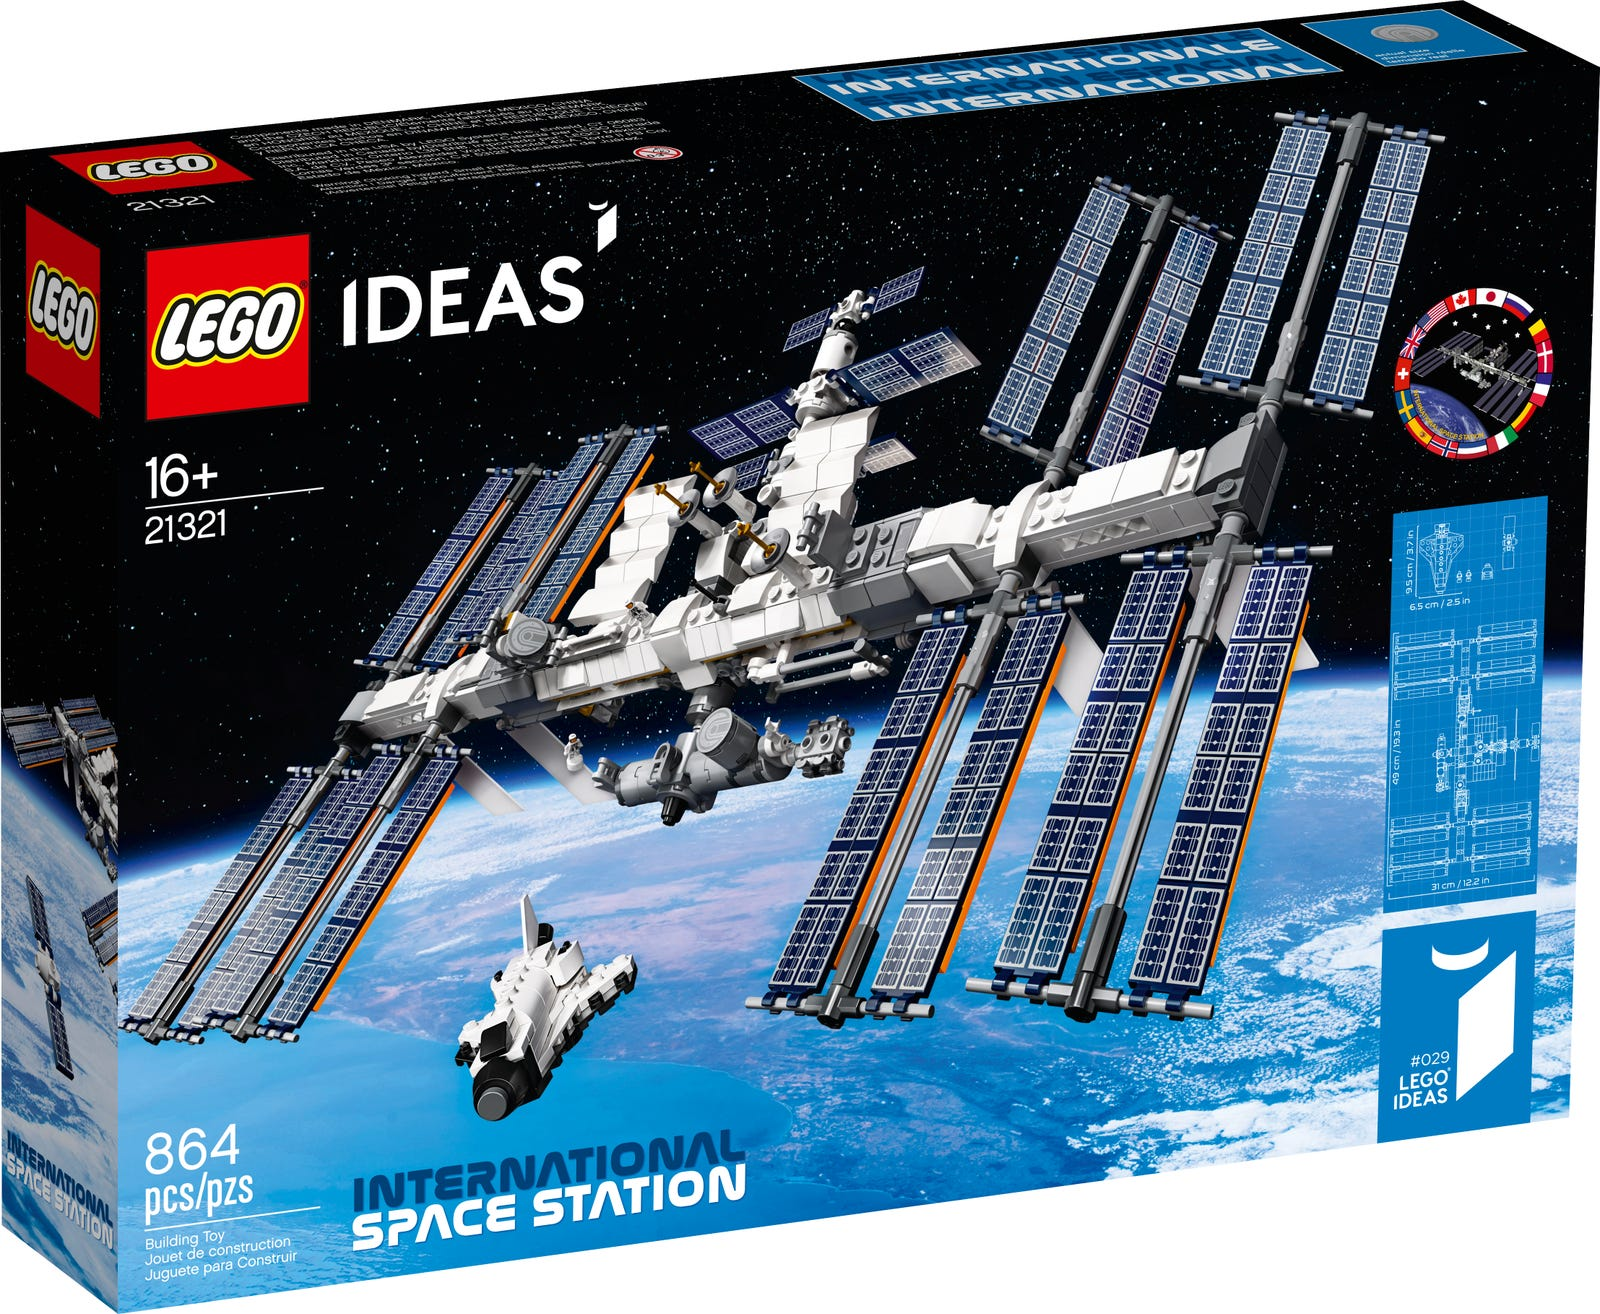 LEGO Unveils International Space Station Replica Set